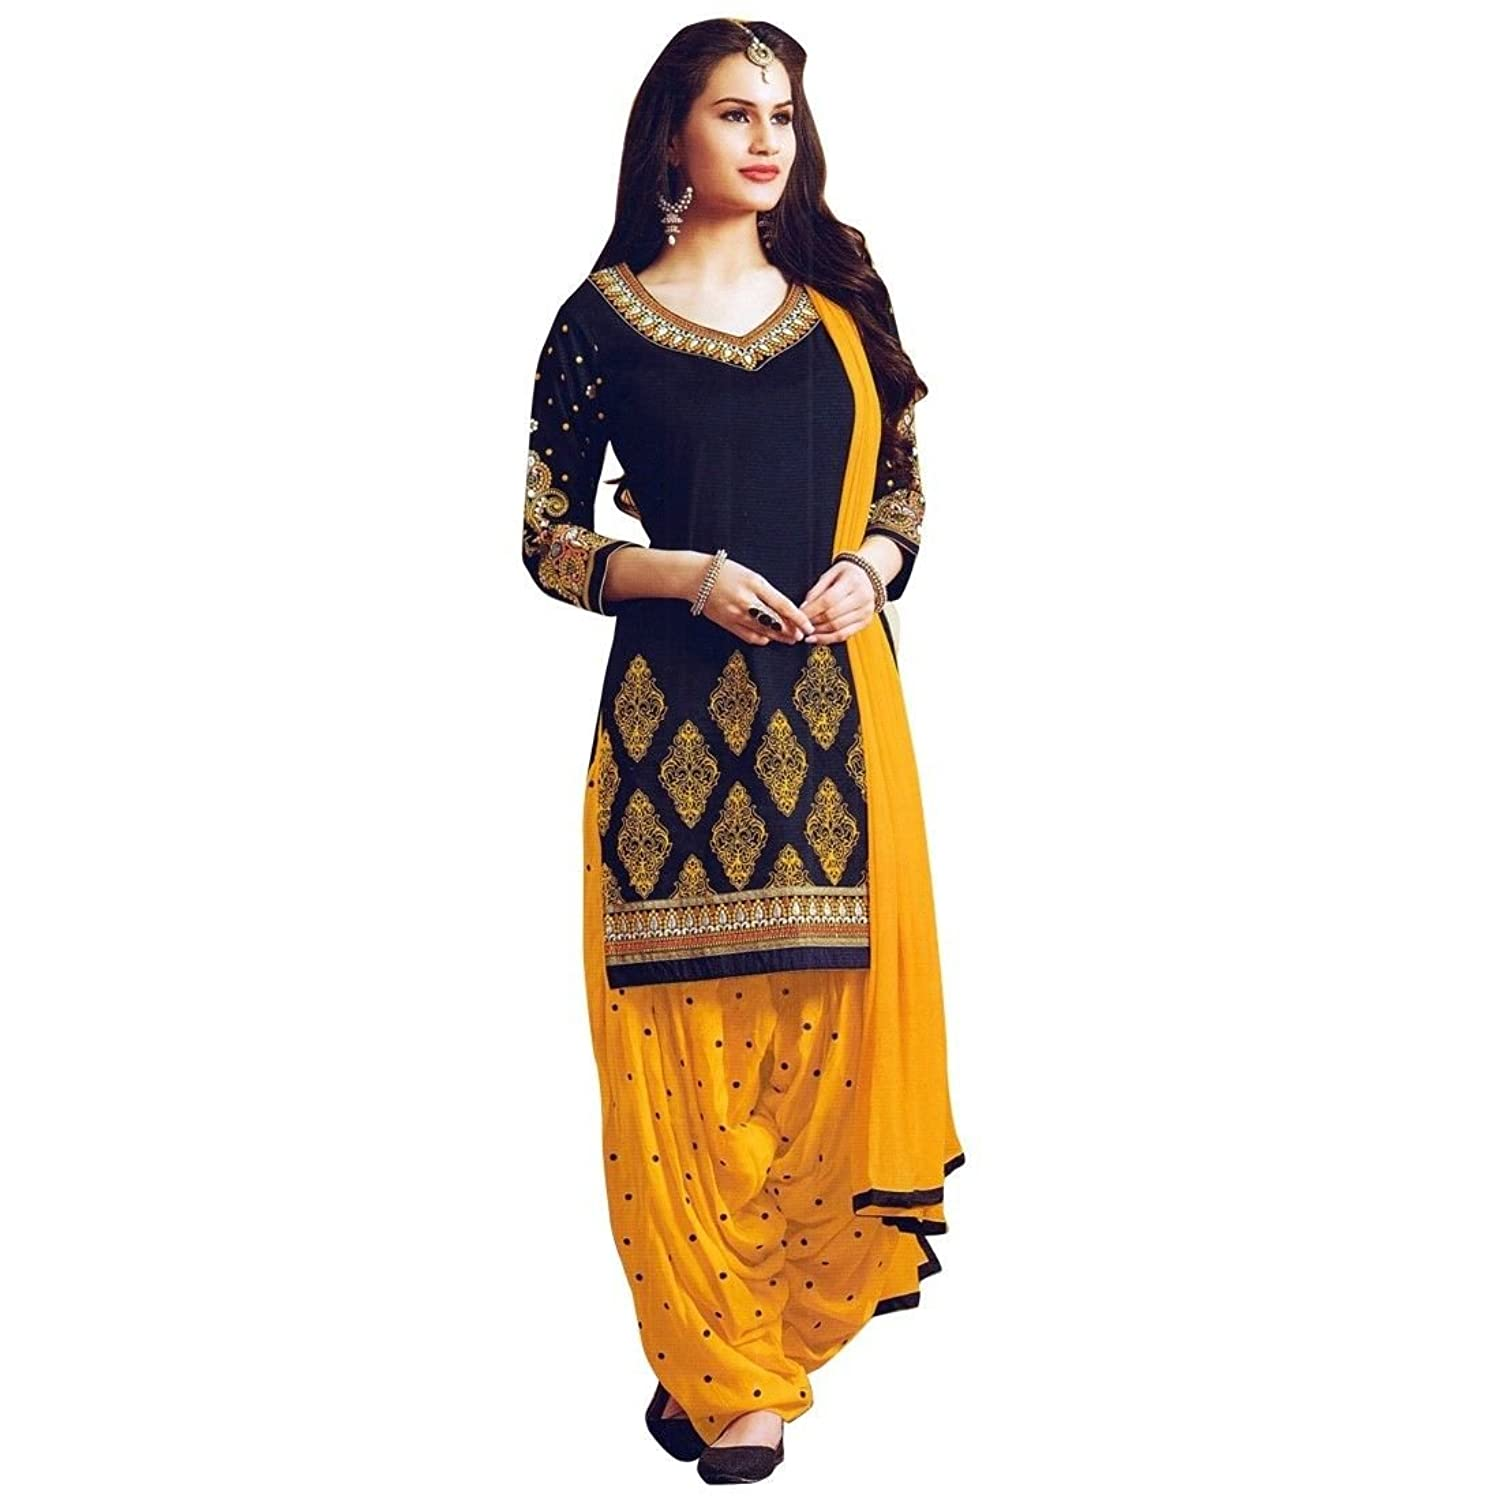 Amazon.com: Salwar Suit for Women Readymade: Clothing